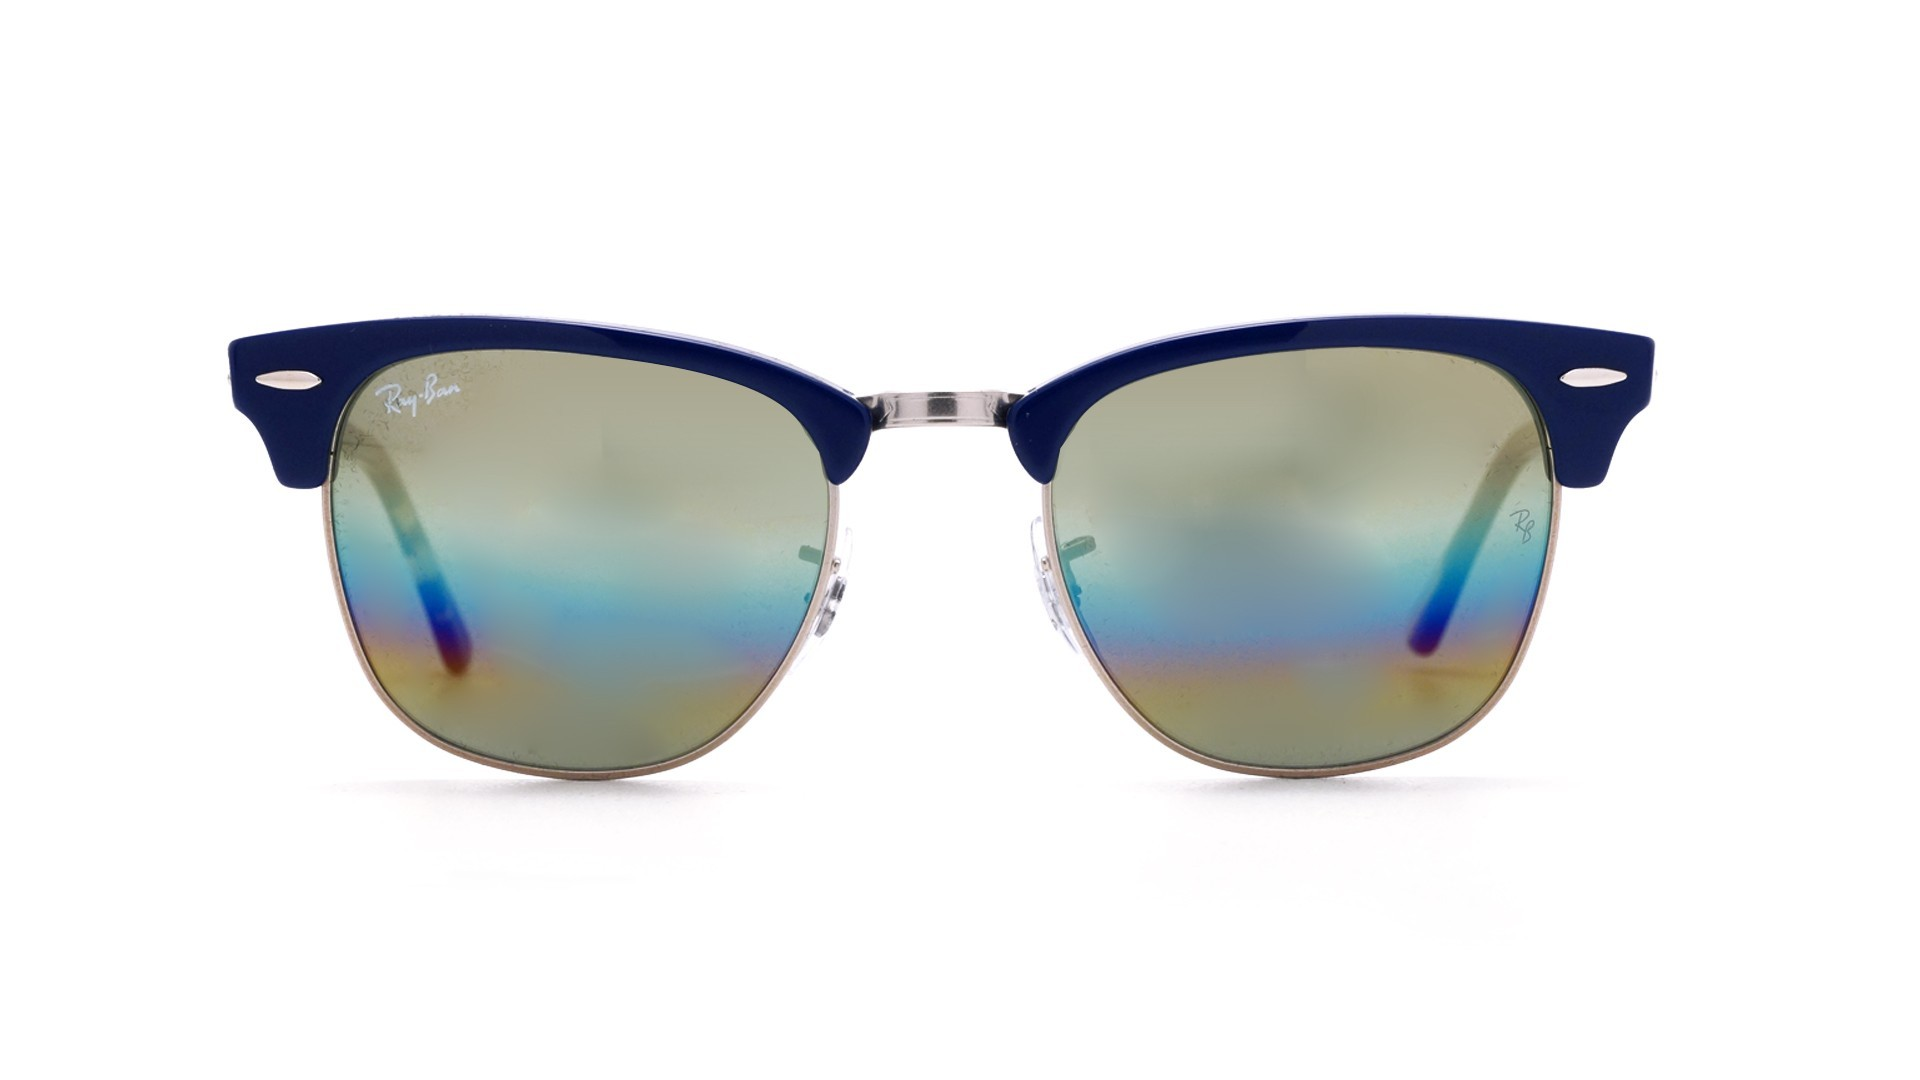 65f1d63c7c3 Sunglasses Ray-Ban Clubmaster Blue RB3016 1223C4 49-21 Small Gradient Mirror